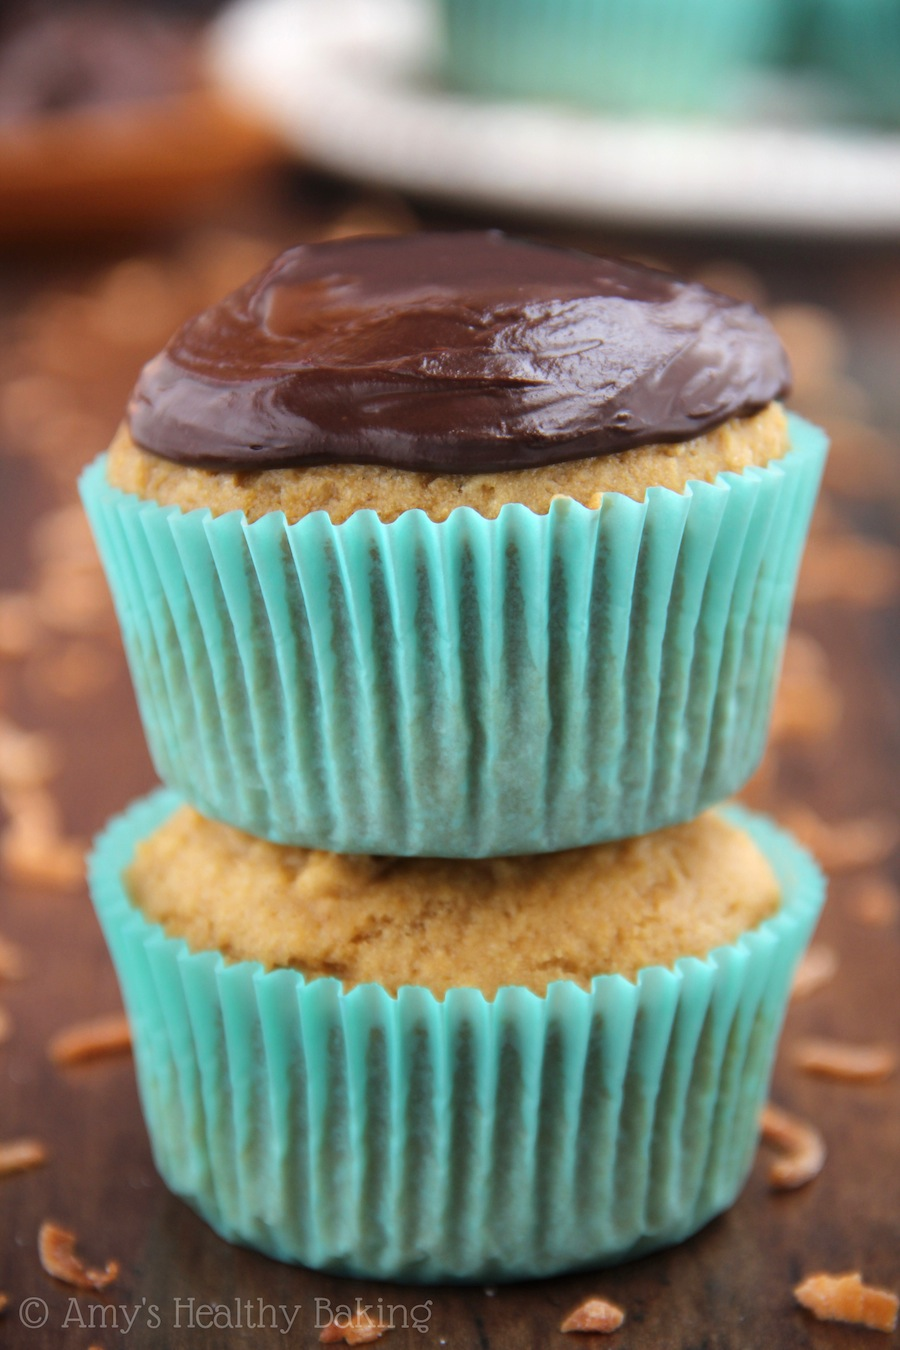 Almond Joy Cupcakes - they taste just like the candy bar! Made with NO butter, refined flour or refined sugar. You NEED this frosting recipe!